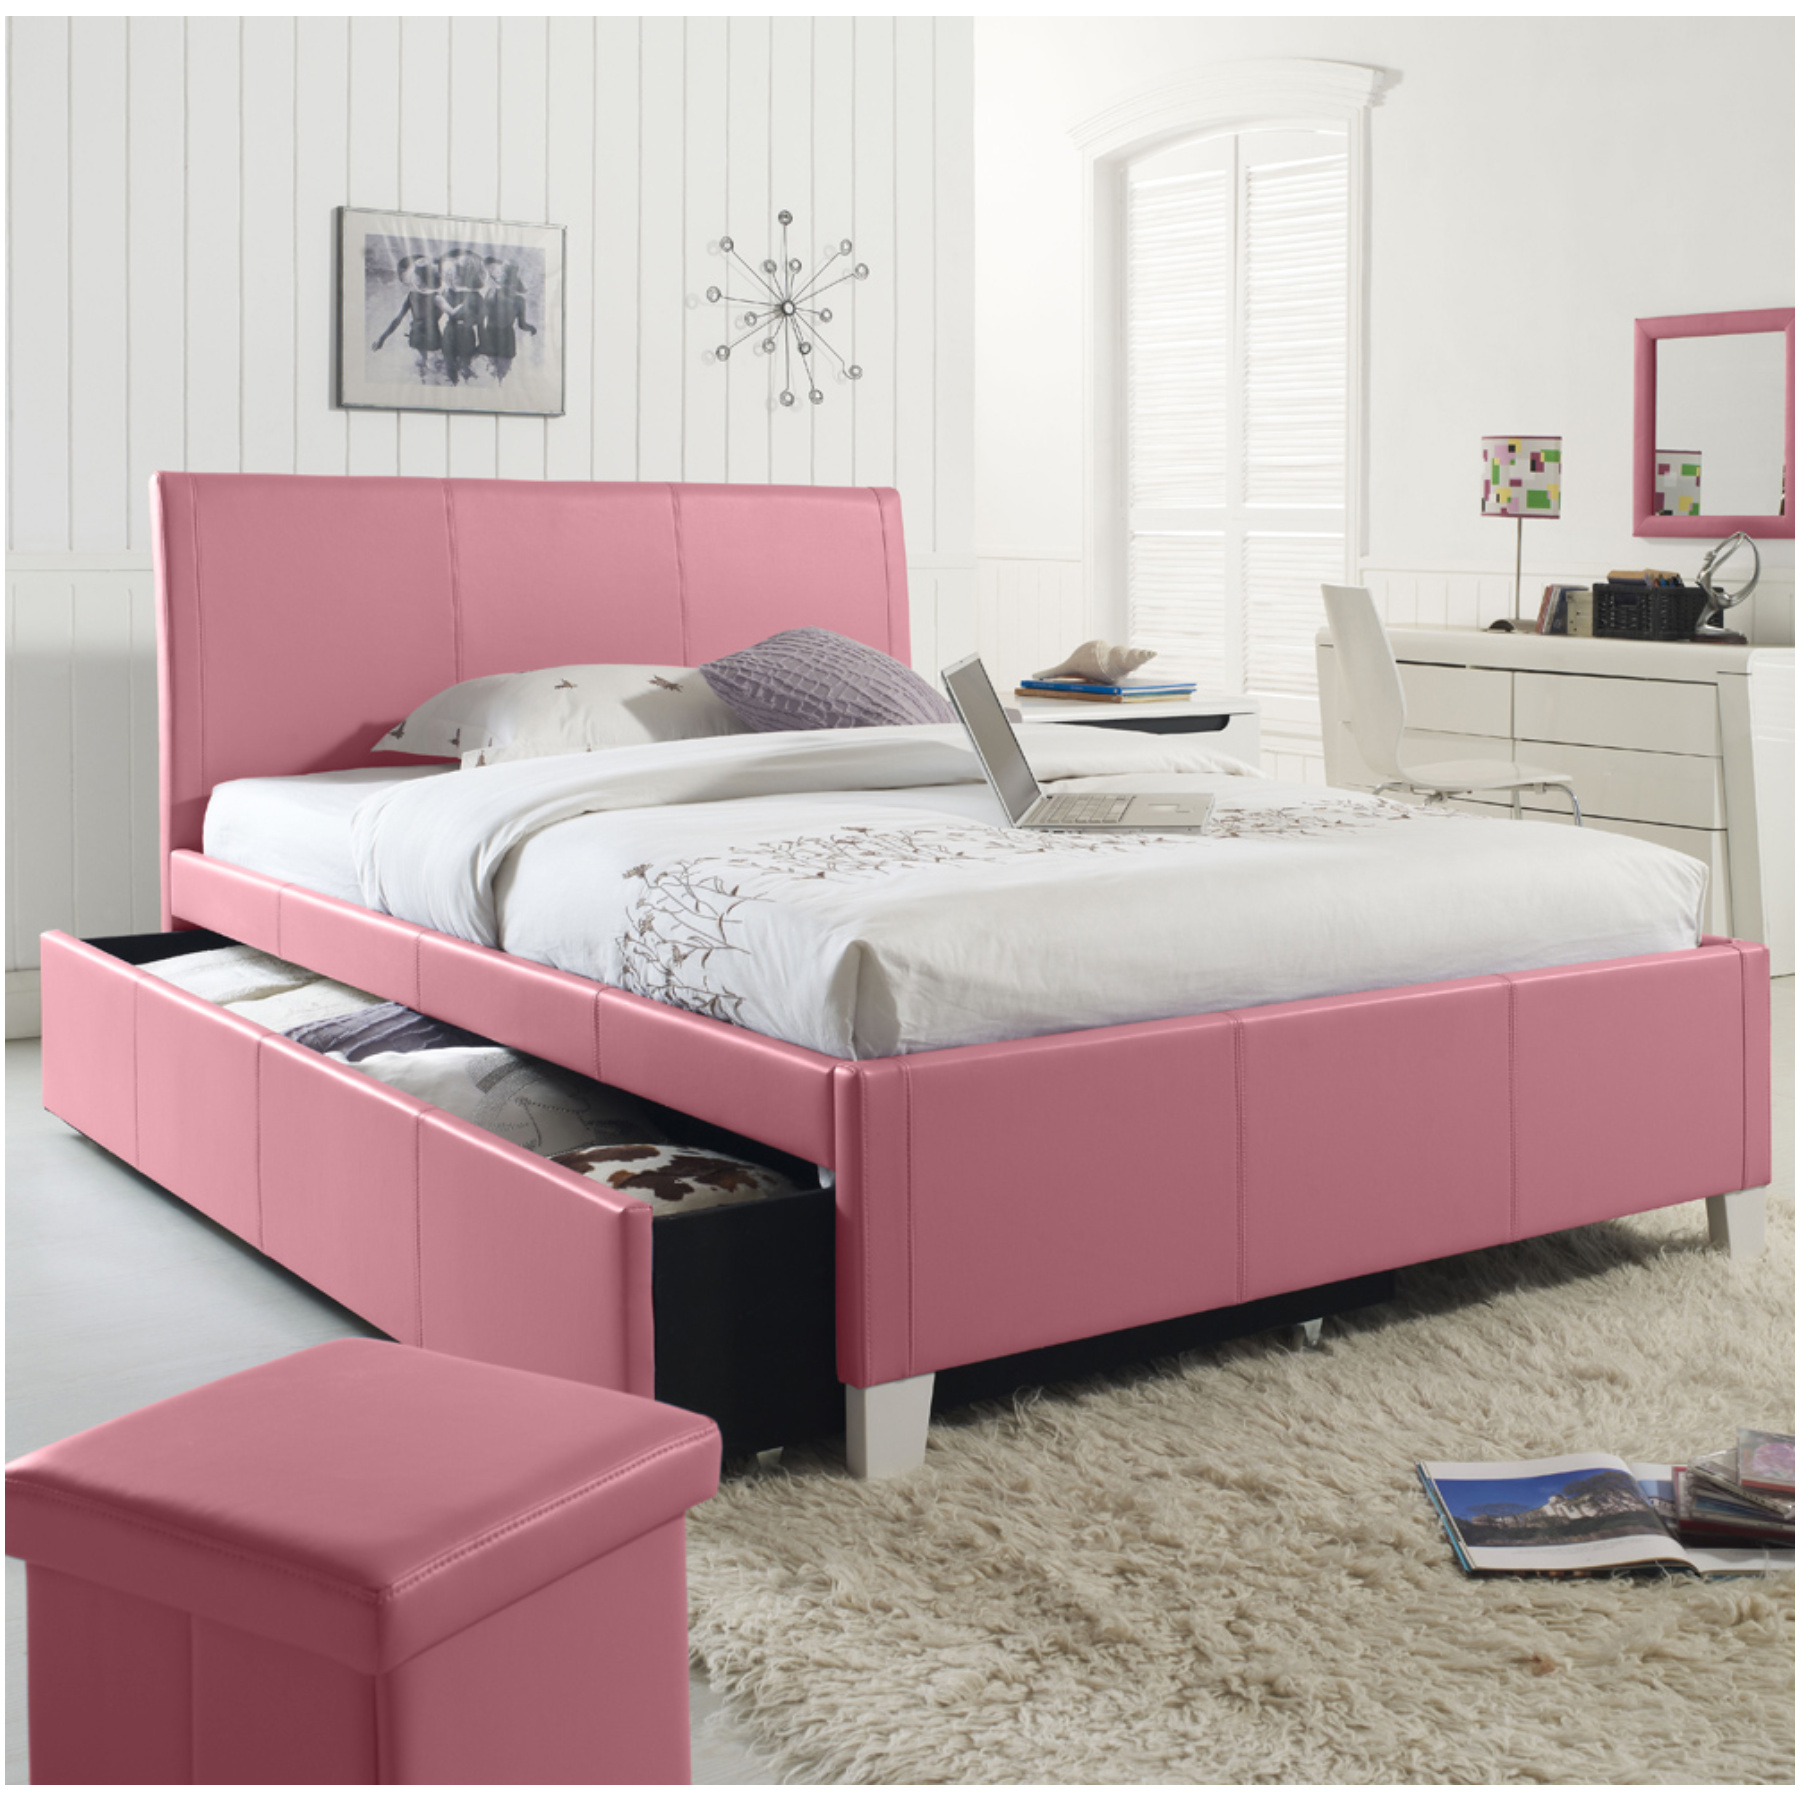 les 20 meilleures id es pour une d coration de chambre d. Black Bedroom Furniture Sets. Home Design Ideas